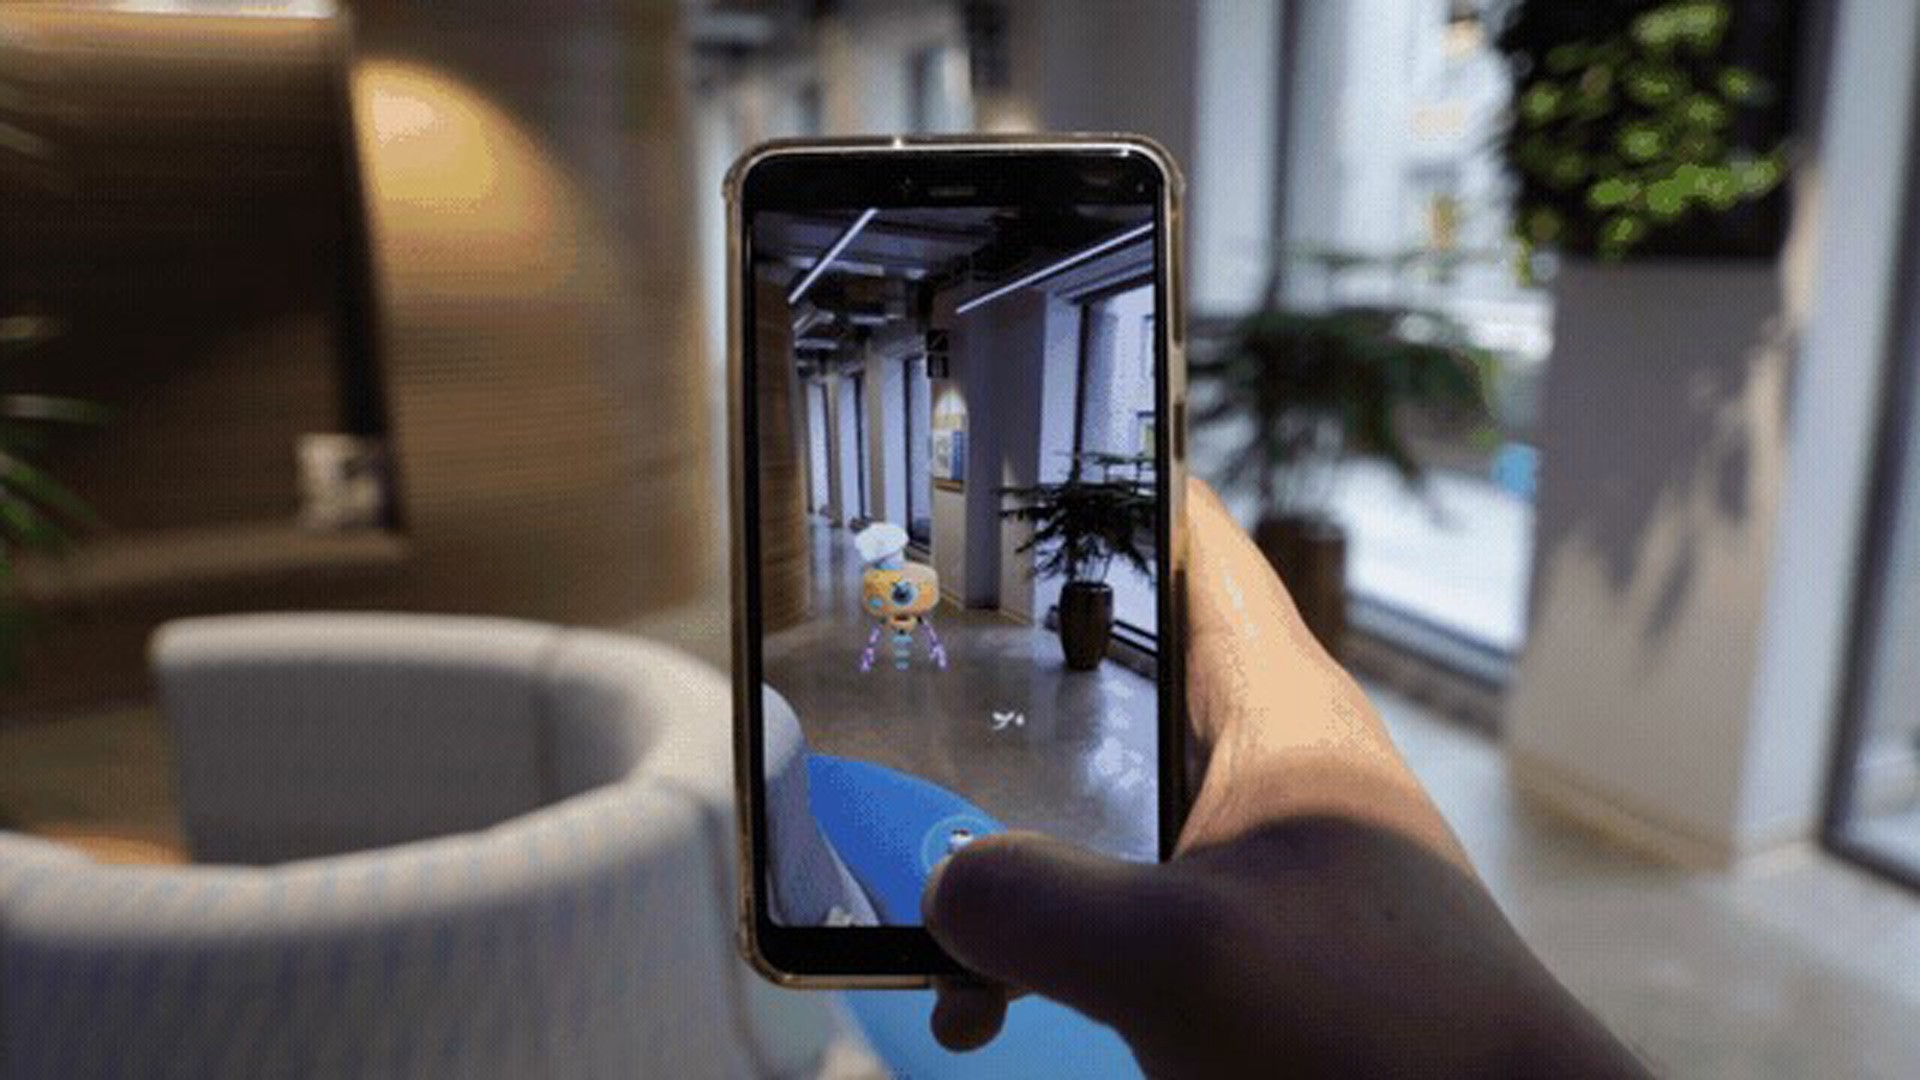 A hand holding up a smartphone, on which a digital character is seen in augmented reality